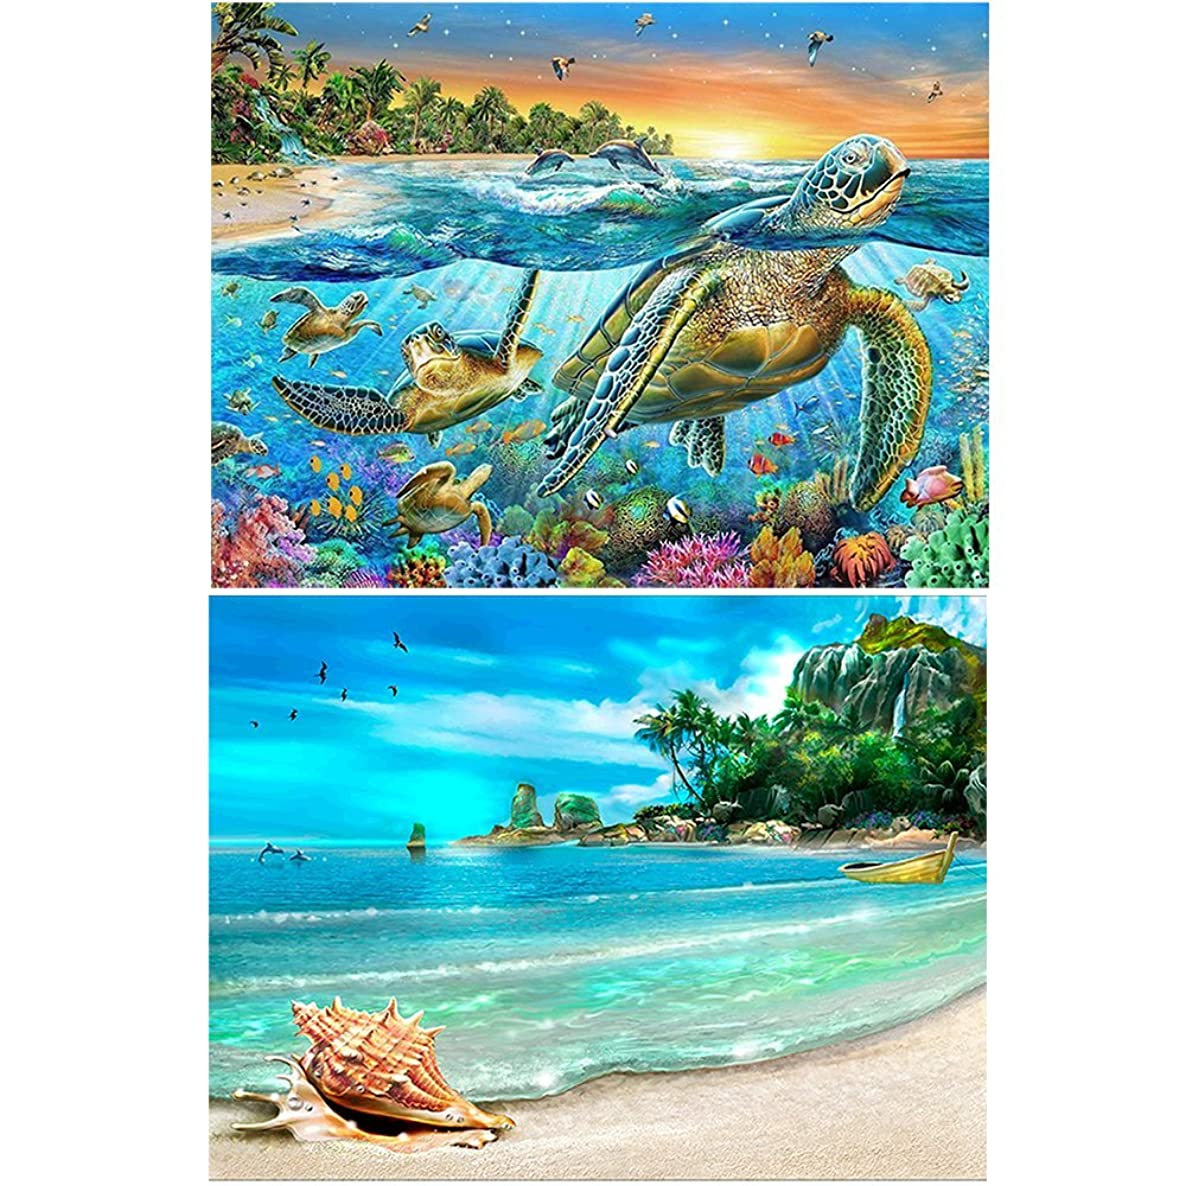 2 Packs 5D DIY Diamond Painting Paint by Numbers Kits for Adult, Turtle & Beach Full Drill Diamond Embroidery Paintings Pictures Arts Craft for Home Decoration by INFELING, Christmas Gift Idea